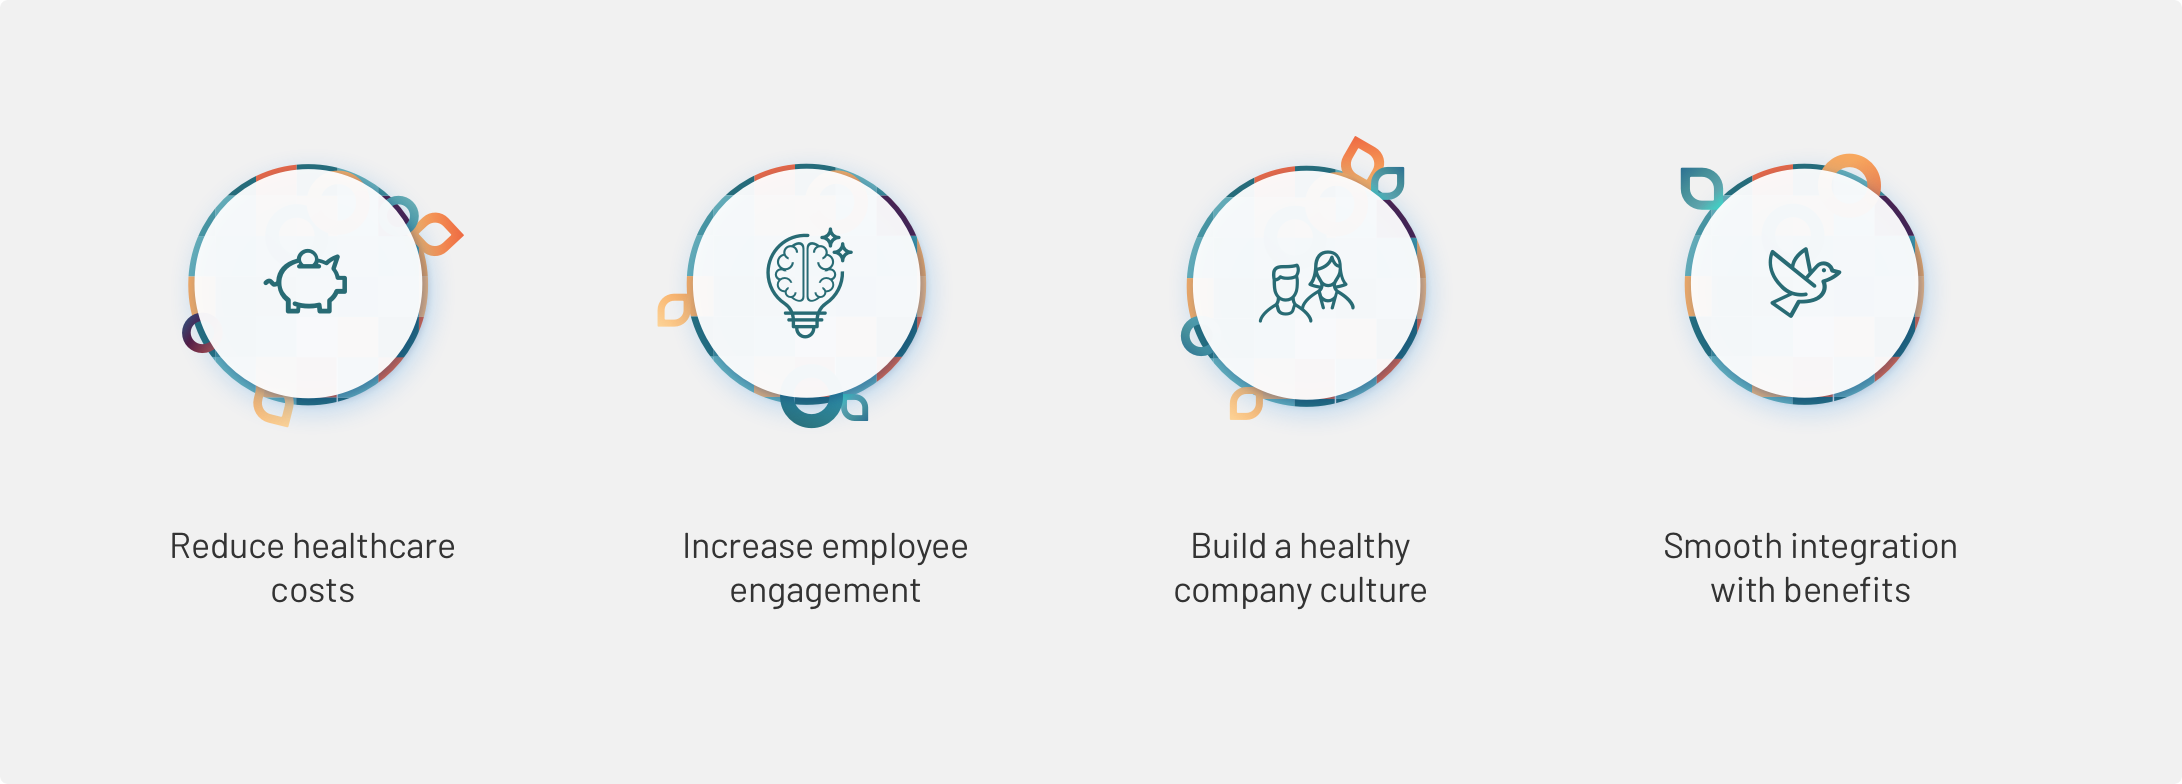 Impact of corporate wellness programs on business